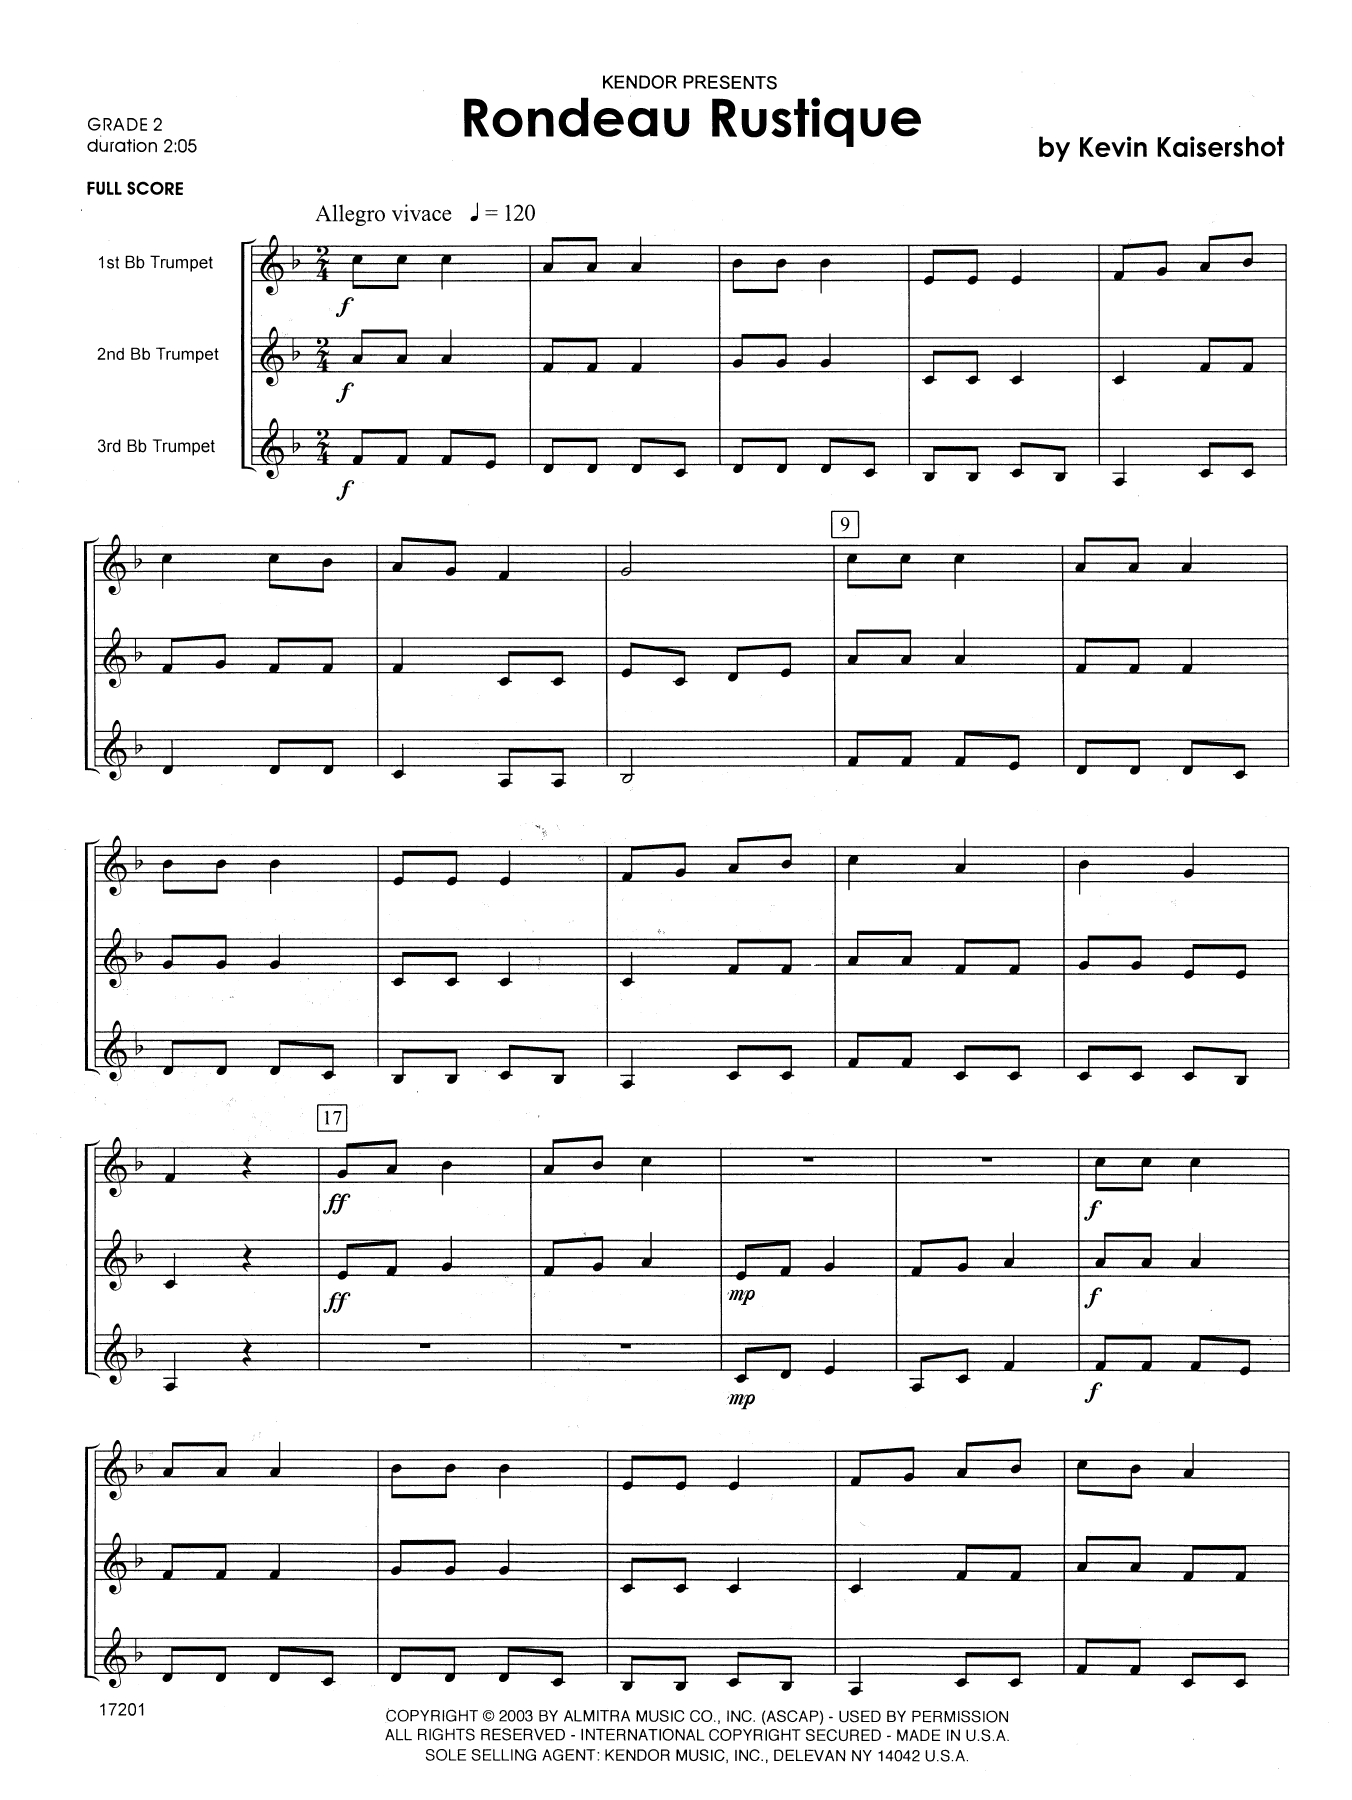 Rondeau Rustique (COMPLETE) sheet music for trumpet trio by Kevin Kaisershot